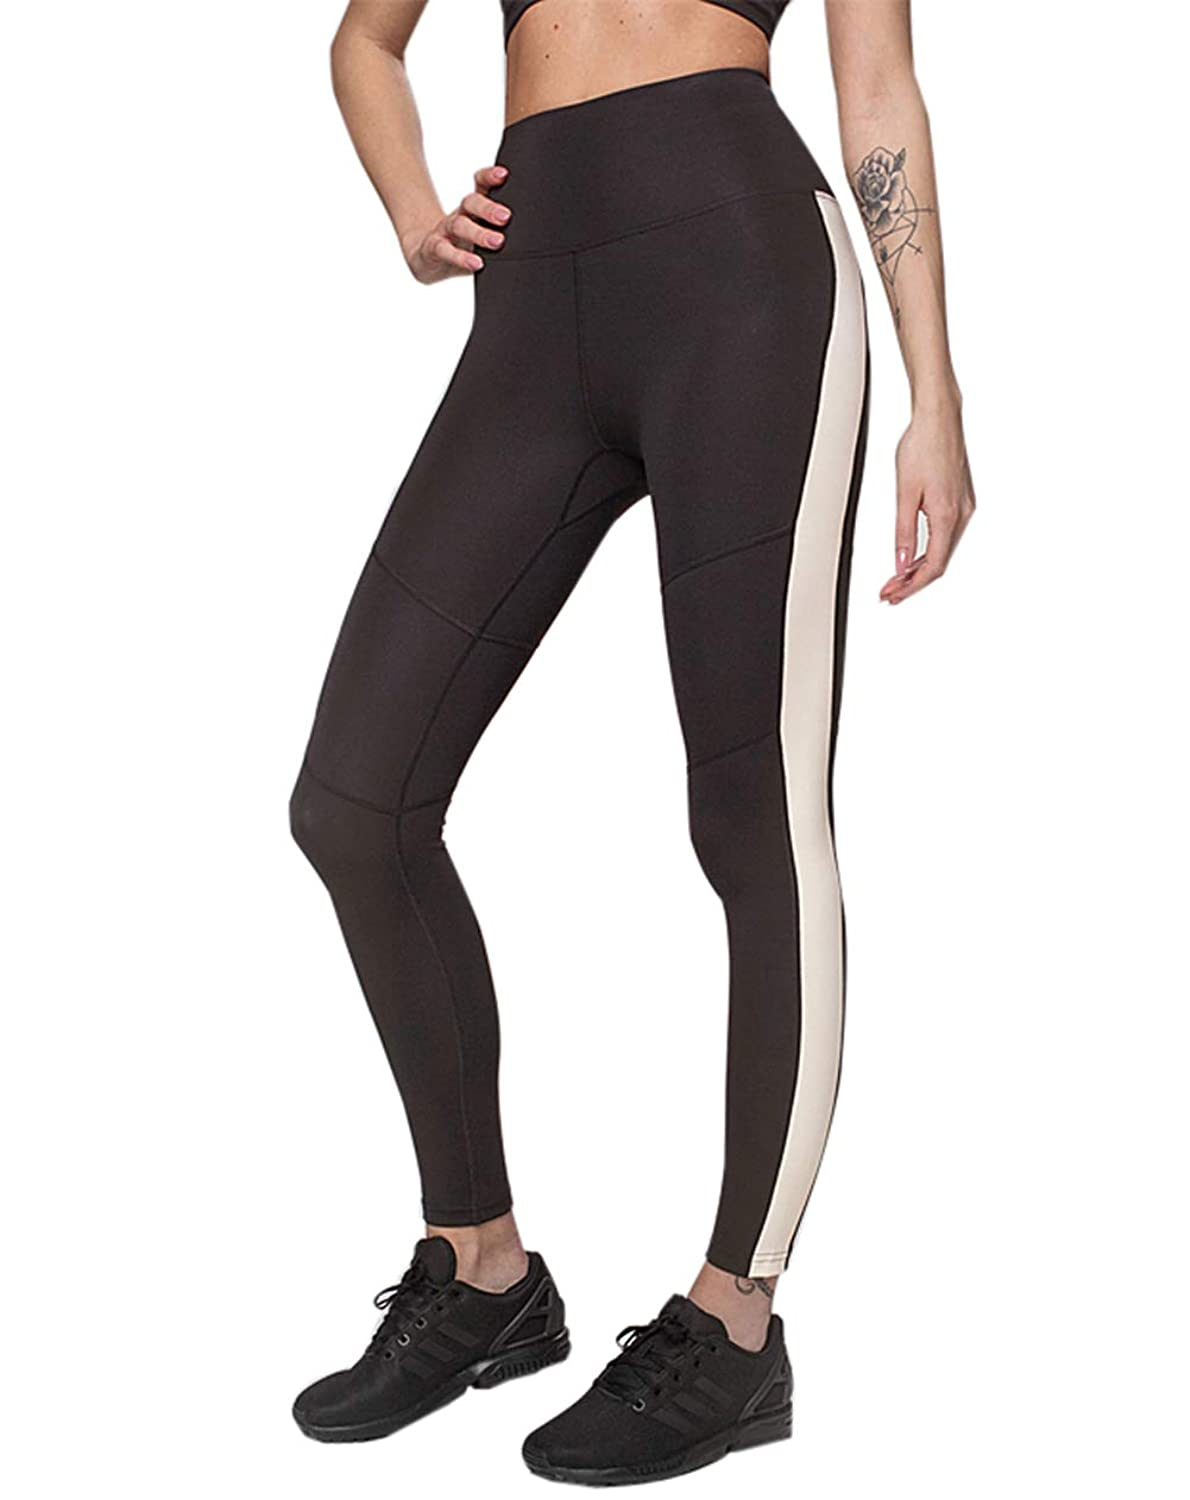 89c9e05073b835 ... FABRIC:88% Polyester/12% Spandex,Power flex fabric,The fabric gives  gentle compression to your tummy and legs,The women sport gym leggings are  a thicker ...